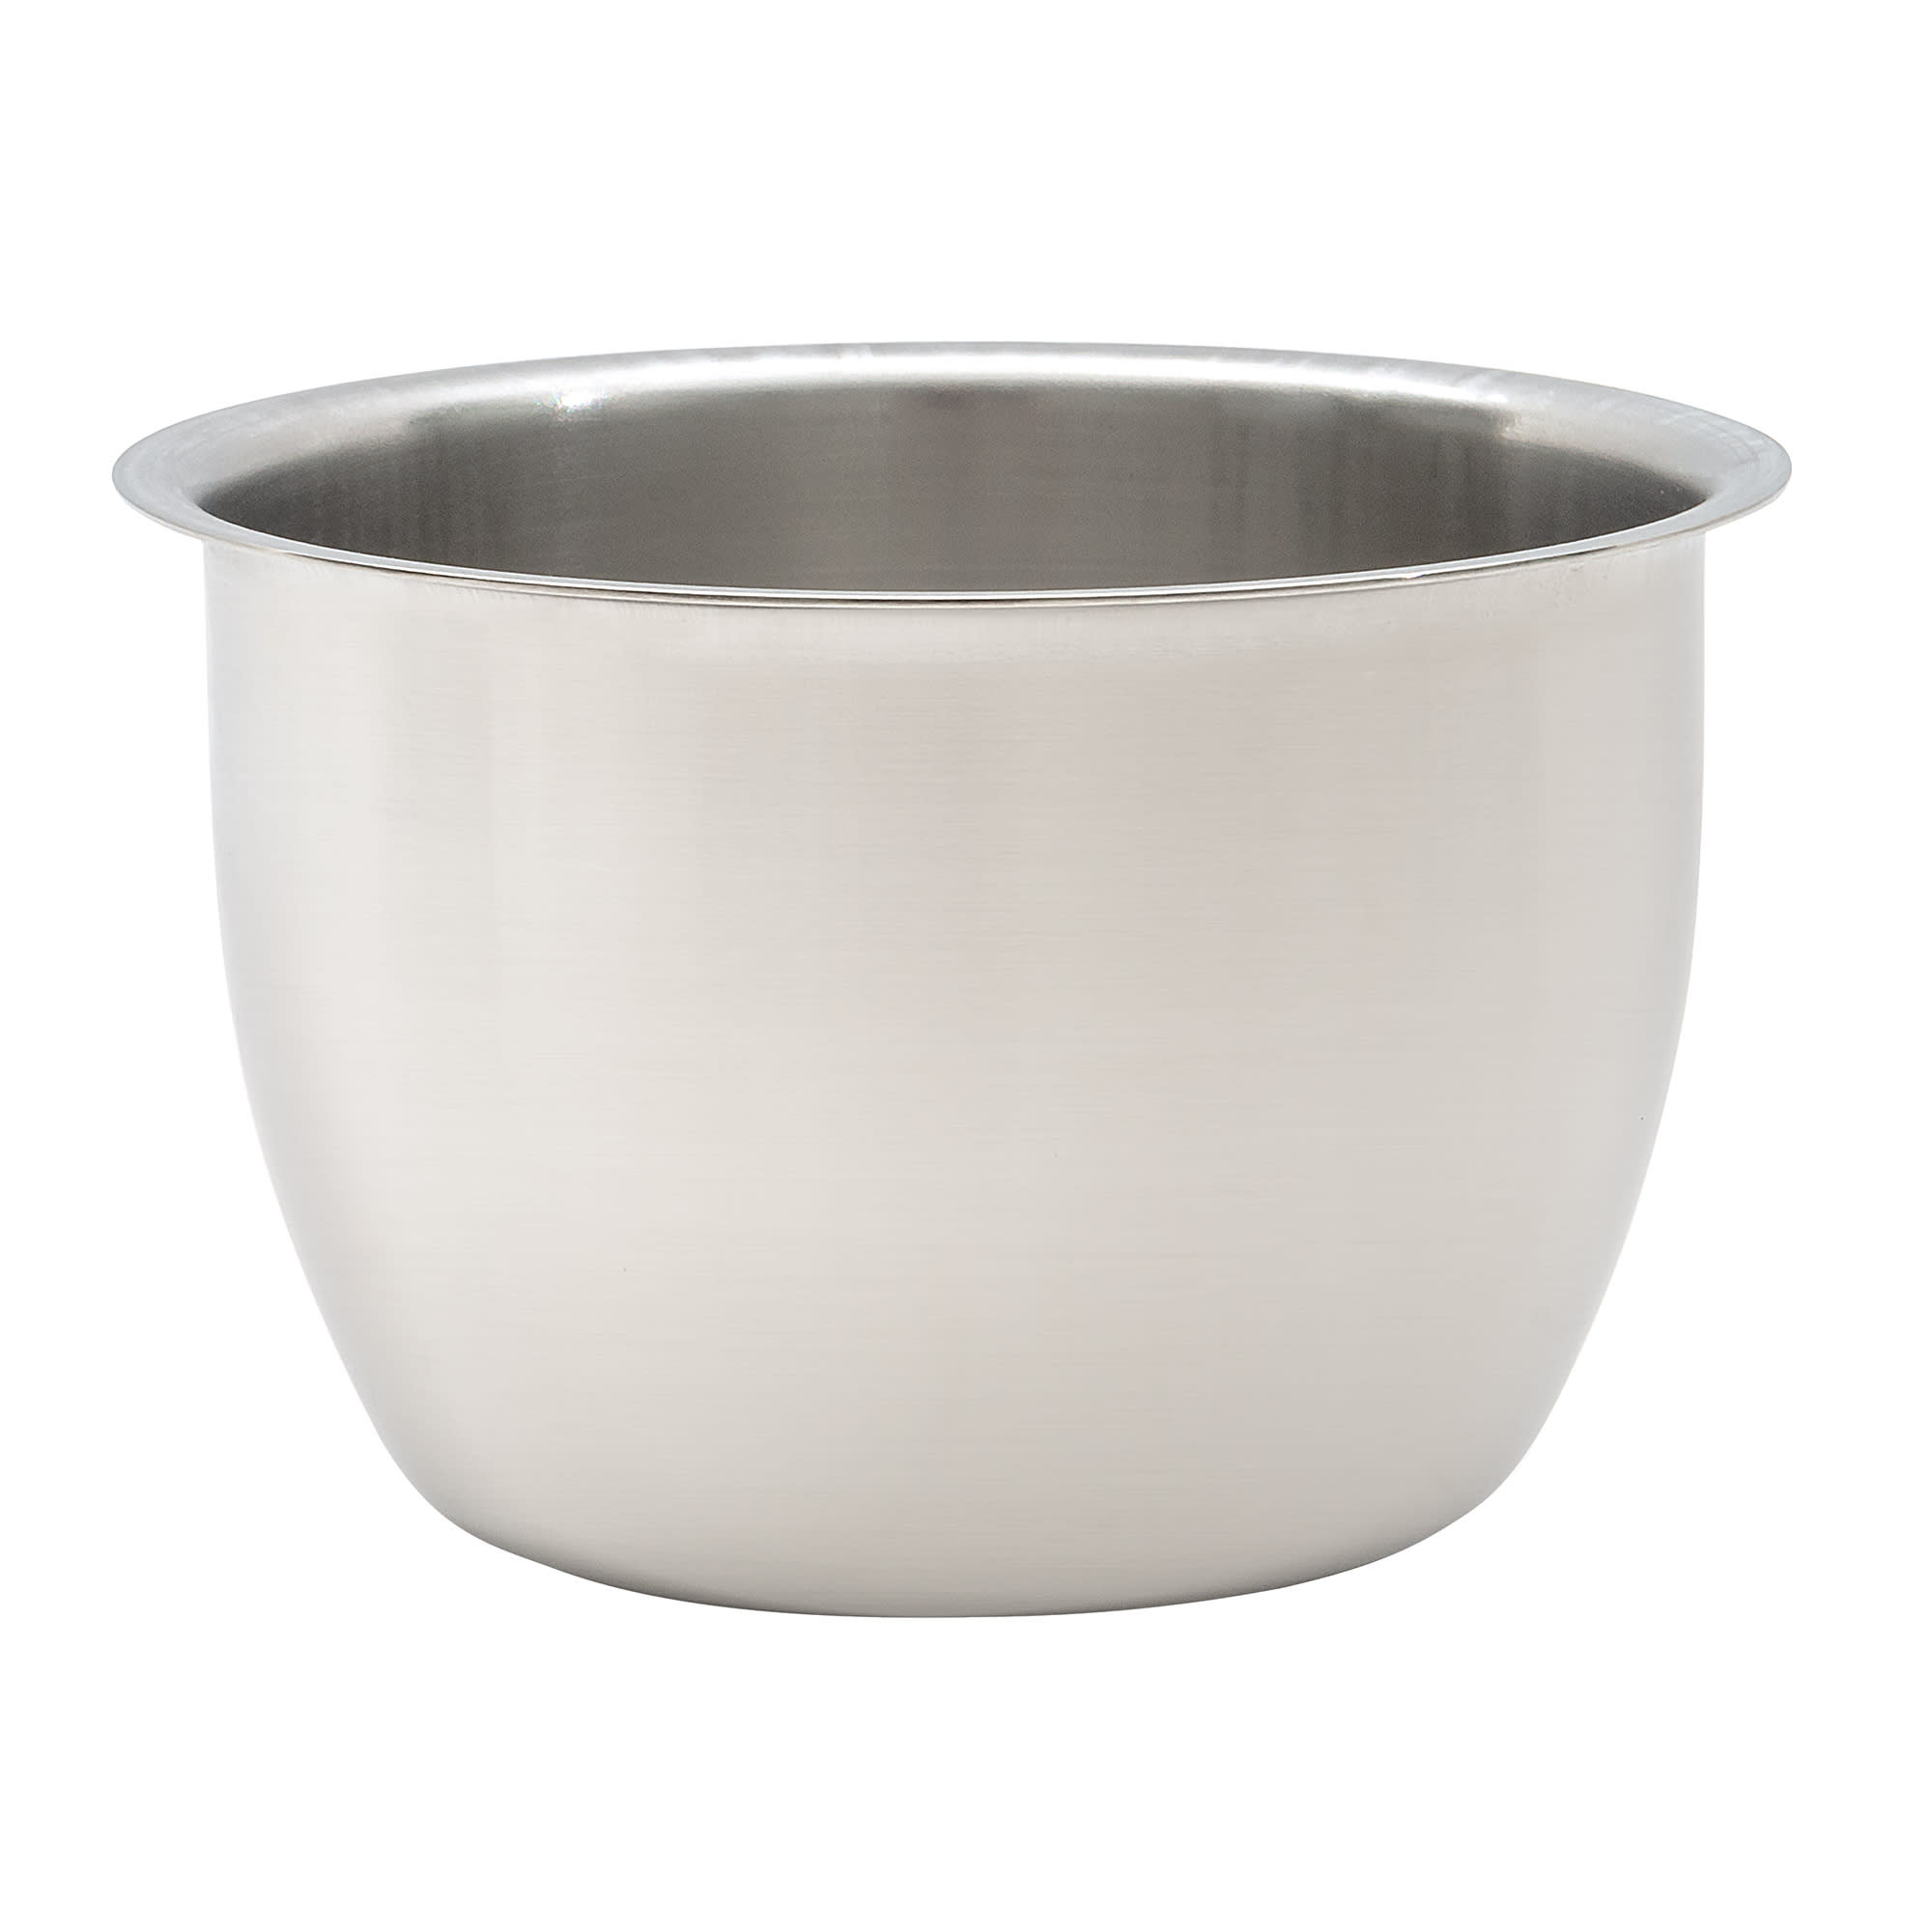 Vollrath 99636 10-oz Stainless Bowl